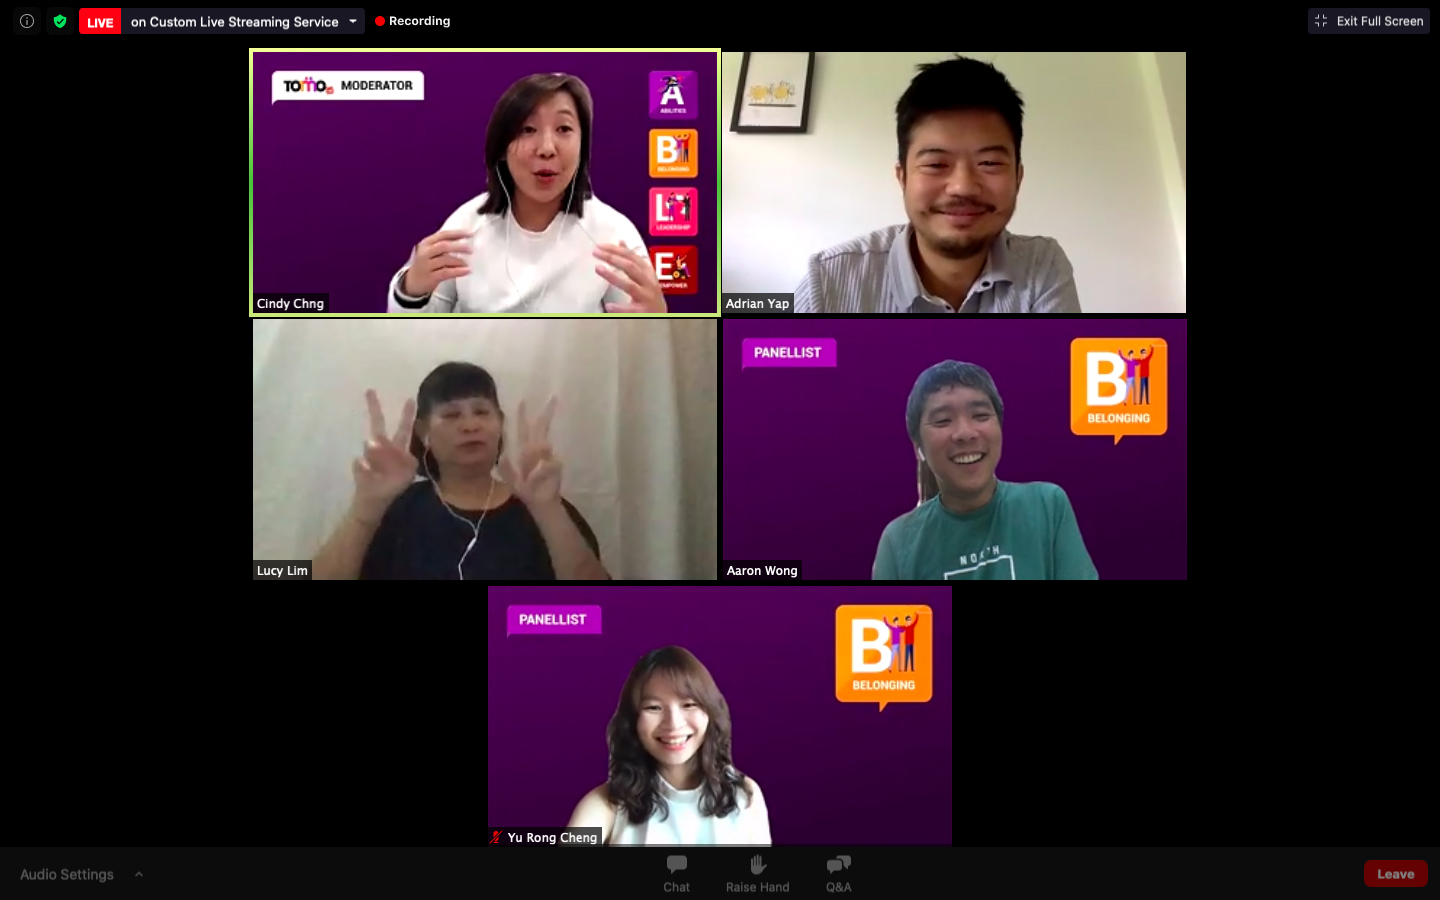 A screenshot from Belonging webinar, everyone is in high spirit when Yurong mentioned how beautiful the workplace will be if everyone could work together